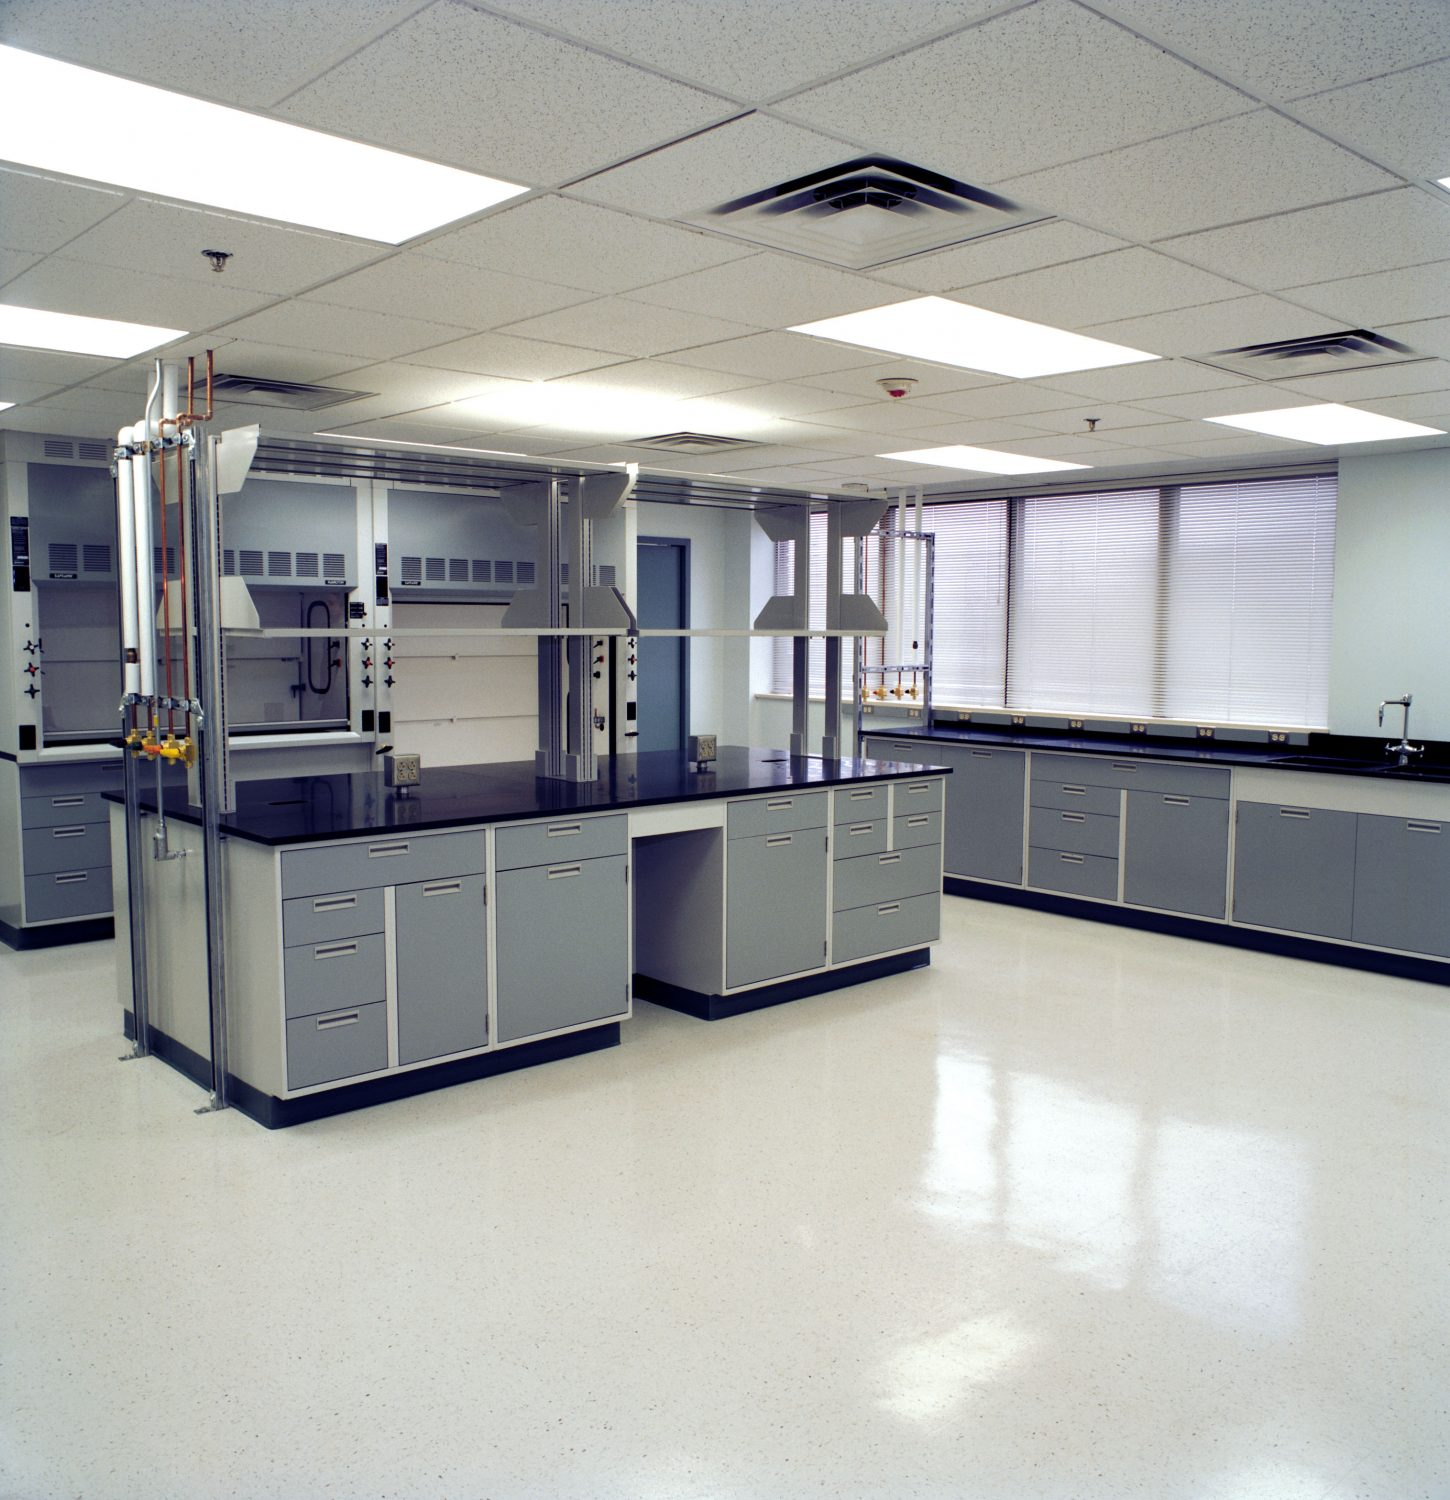 Praxair Tonawanda Plant and Lab Renovation